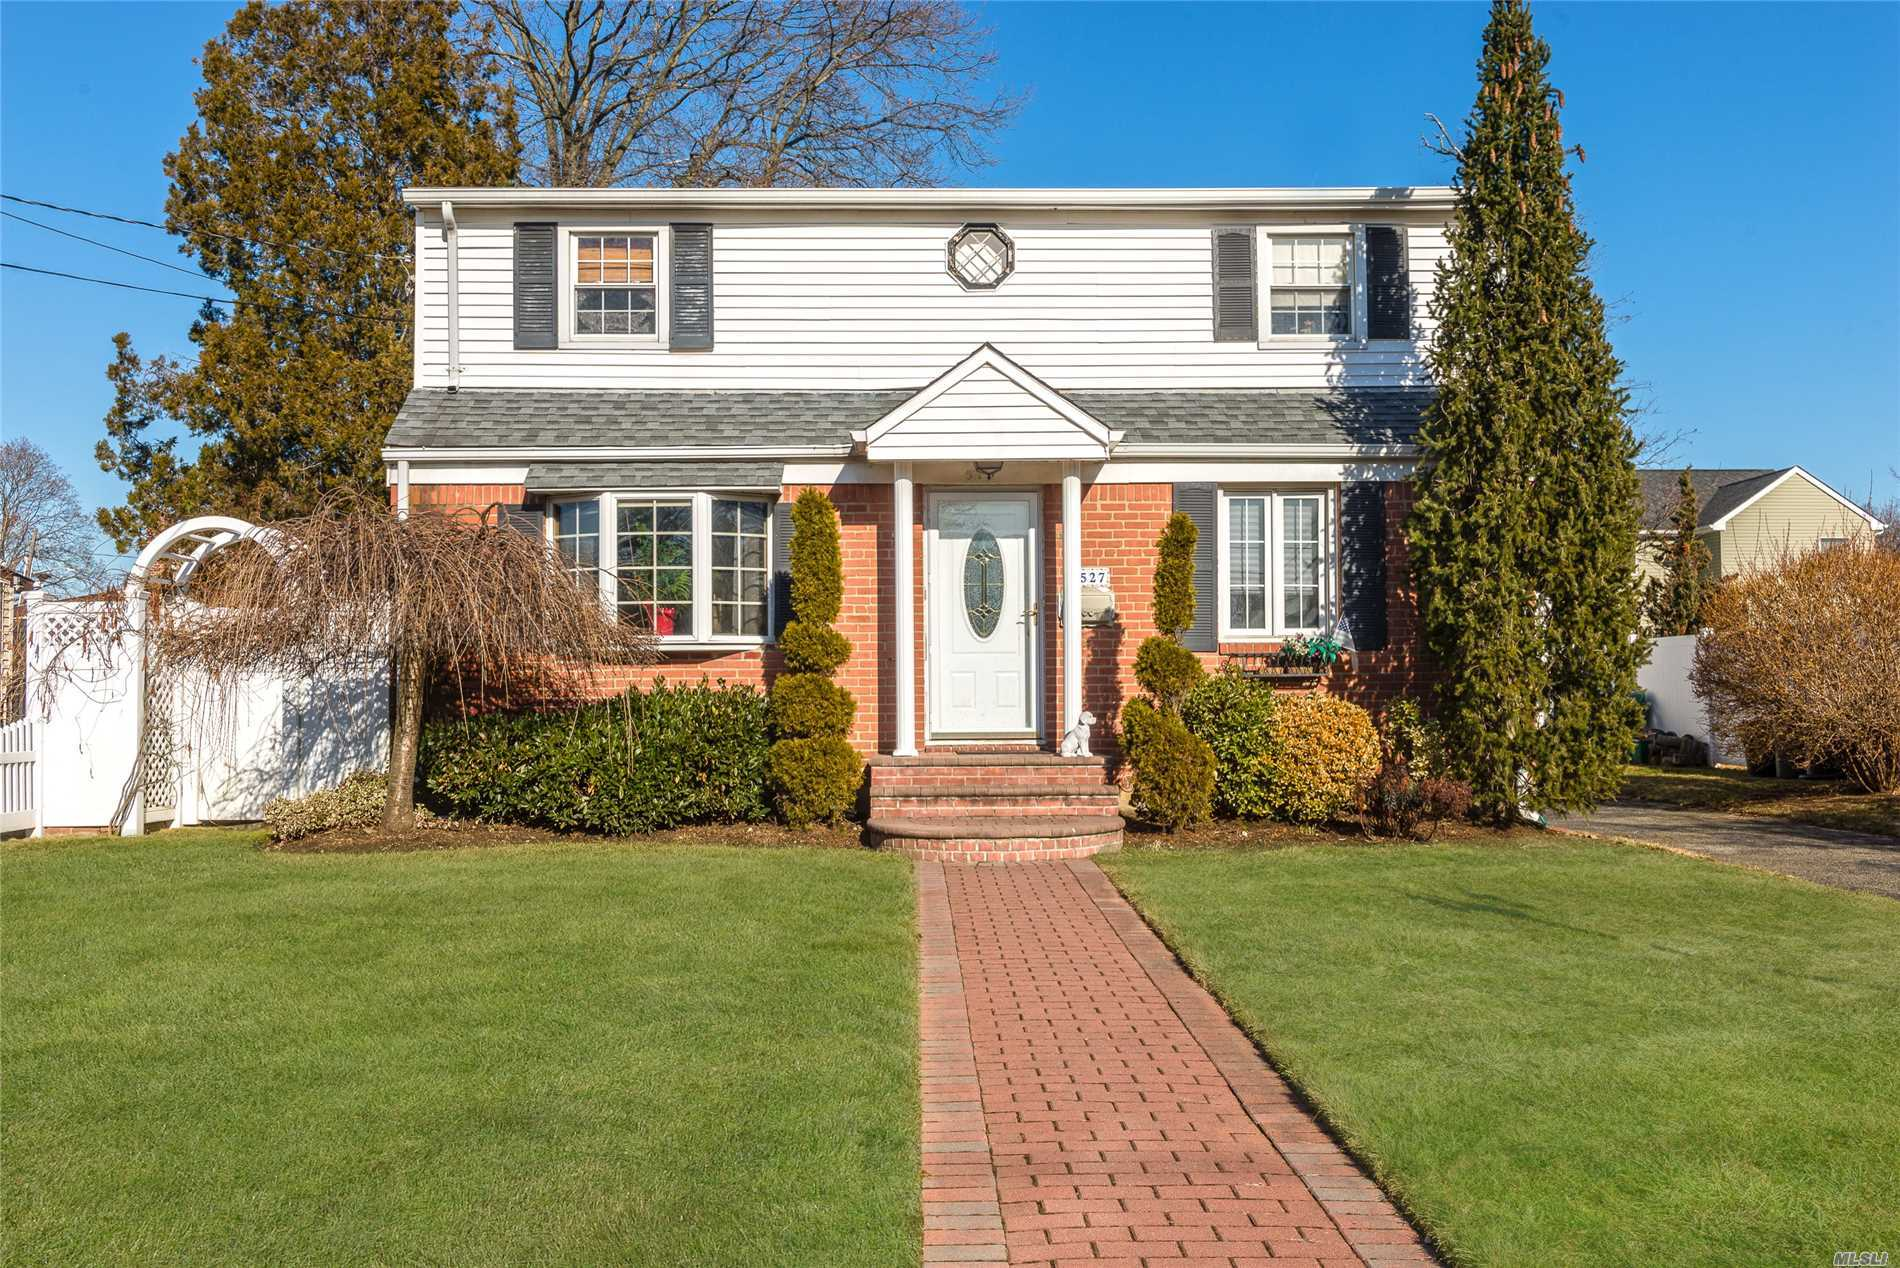 527 Patterson St - East Meadow, New York